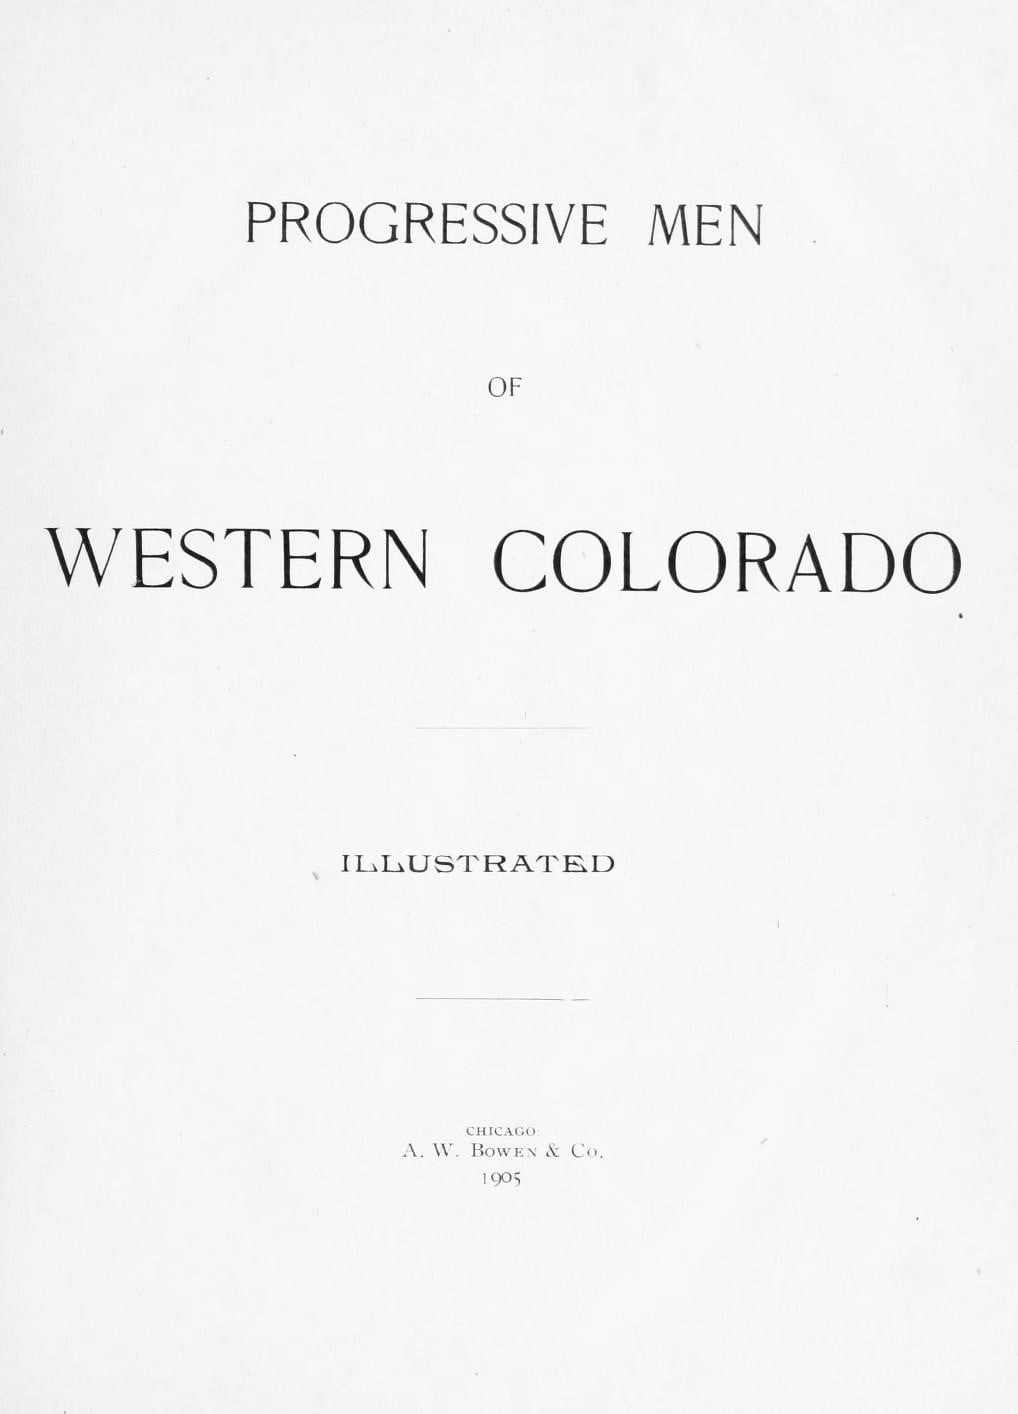 Progressive Men of Western Colorado,